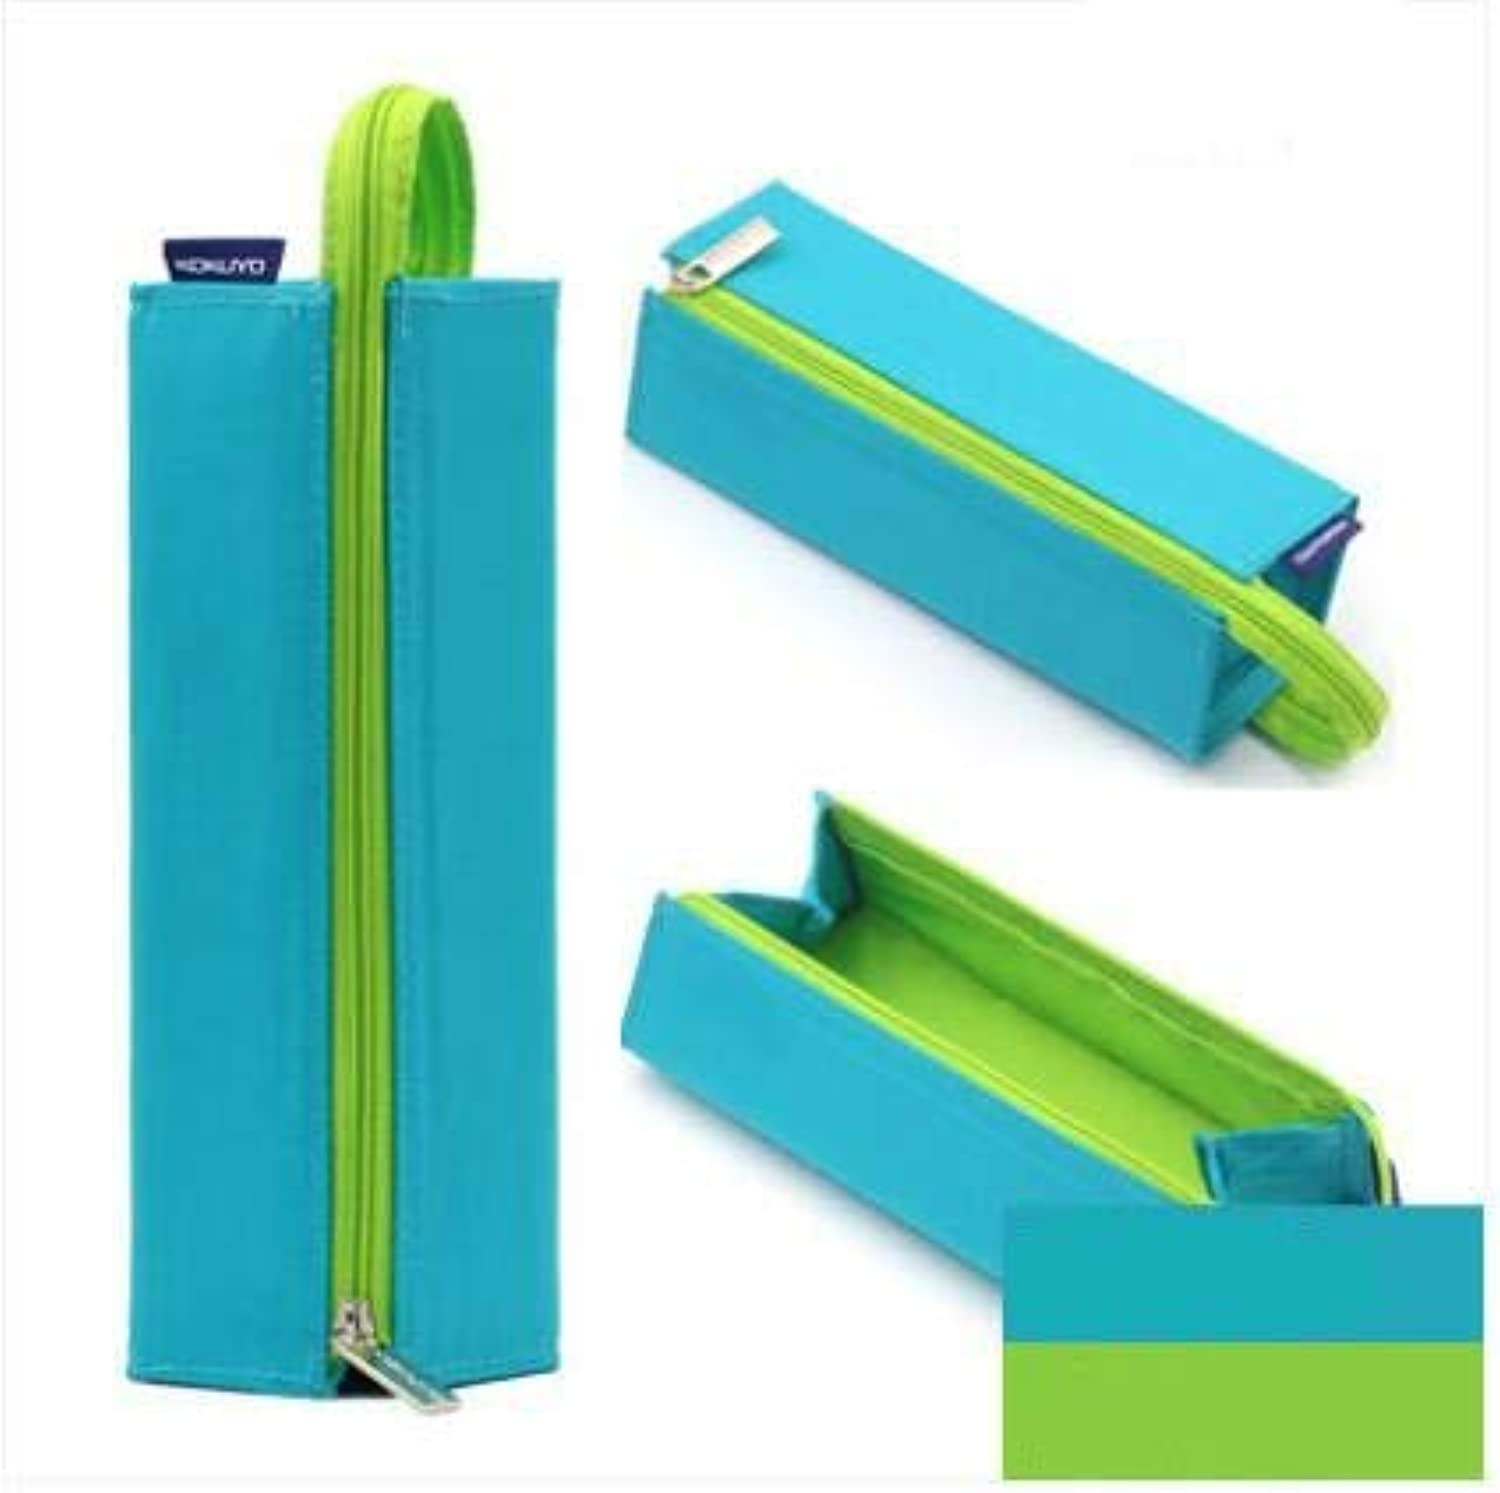 LFDQBH Square Pencil Bag For School Boy Girl Creative Design Portable Canvas Storage Tools Large Capacity Student Supplies